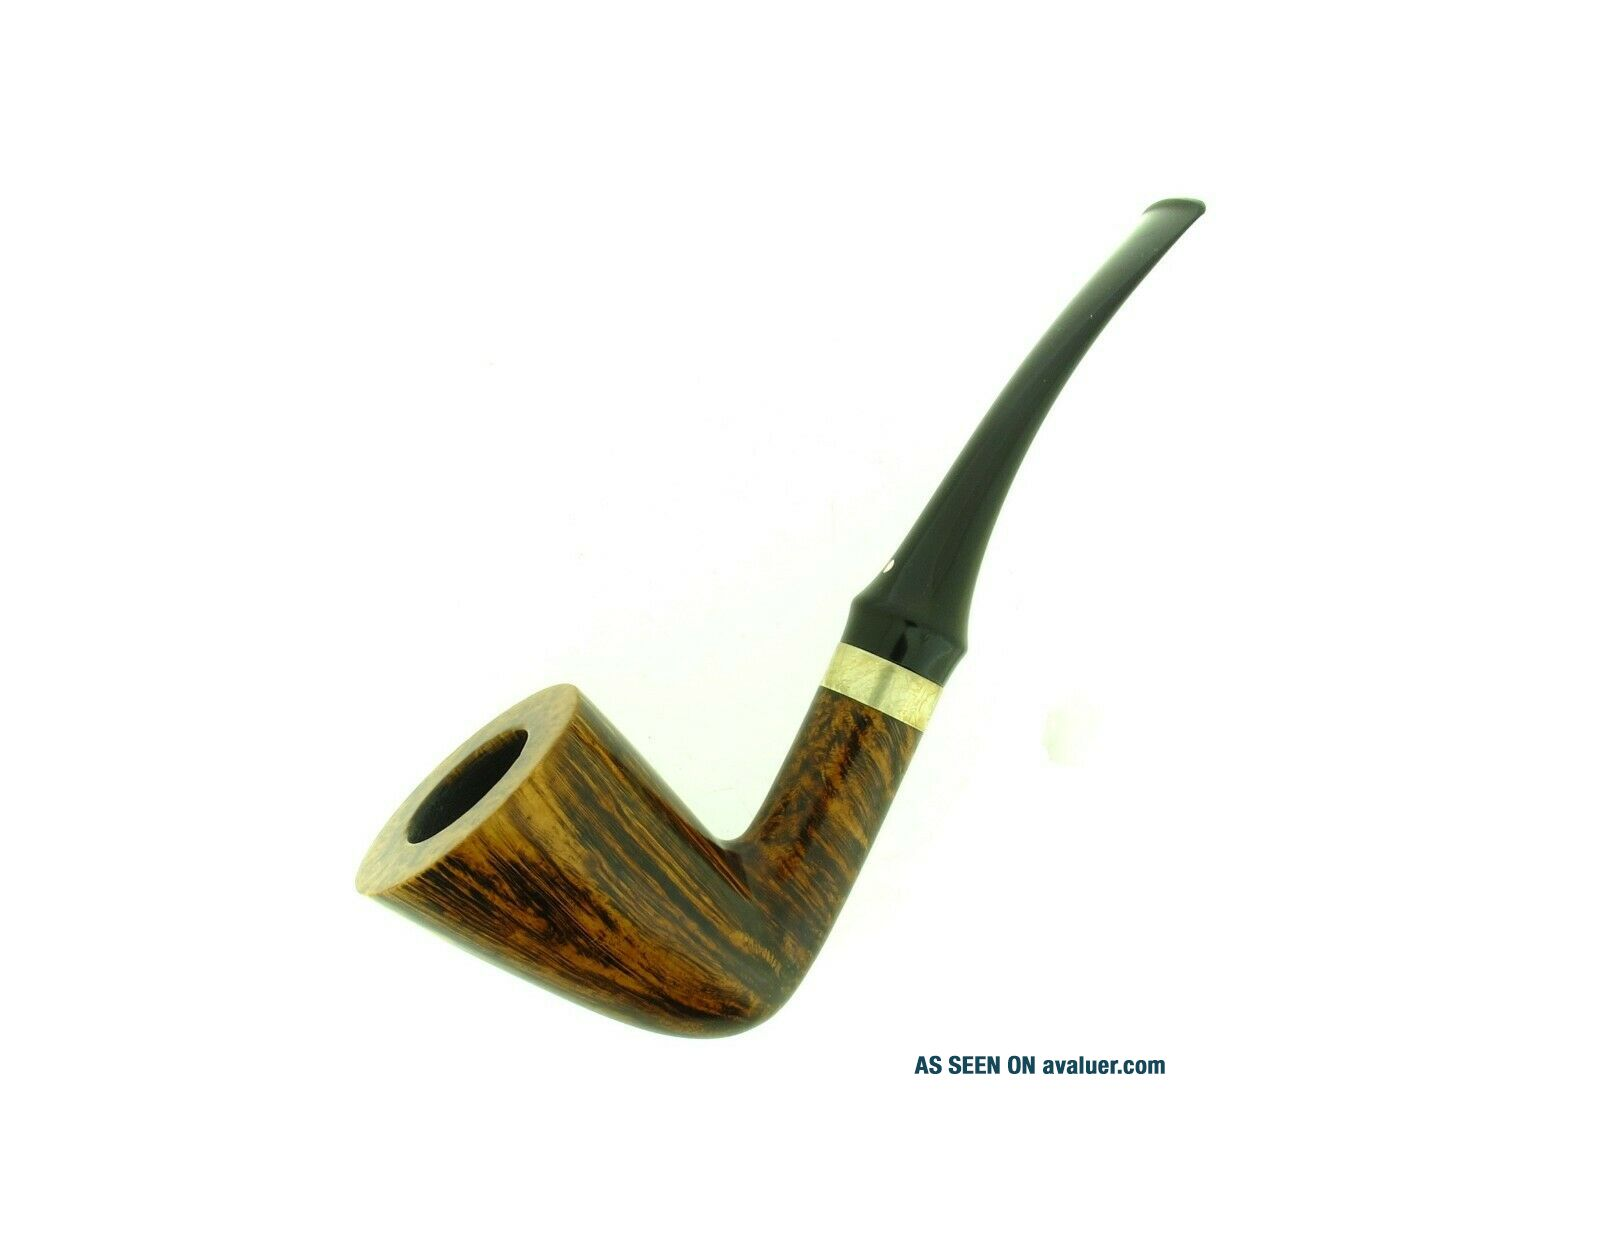 ANNE JULIE OF DENMARK GOLDEN CONTRAST SILVER BAND PIPE